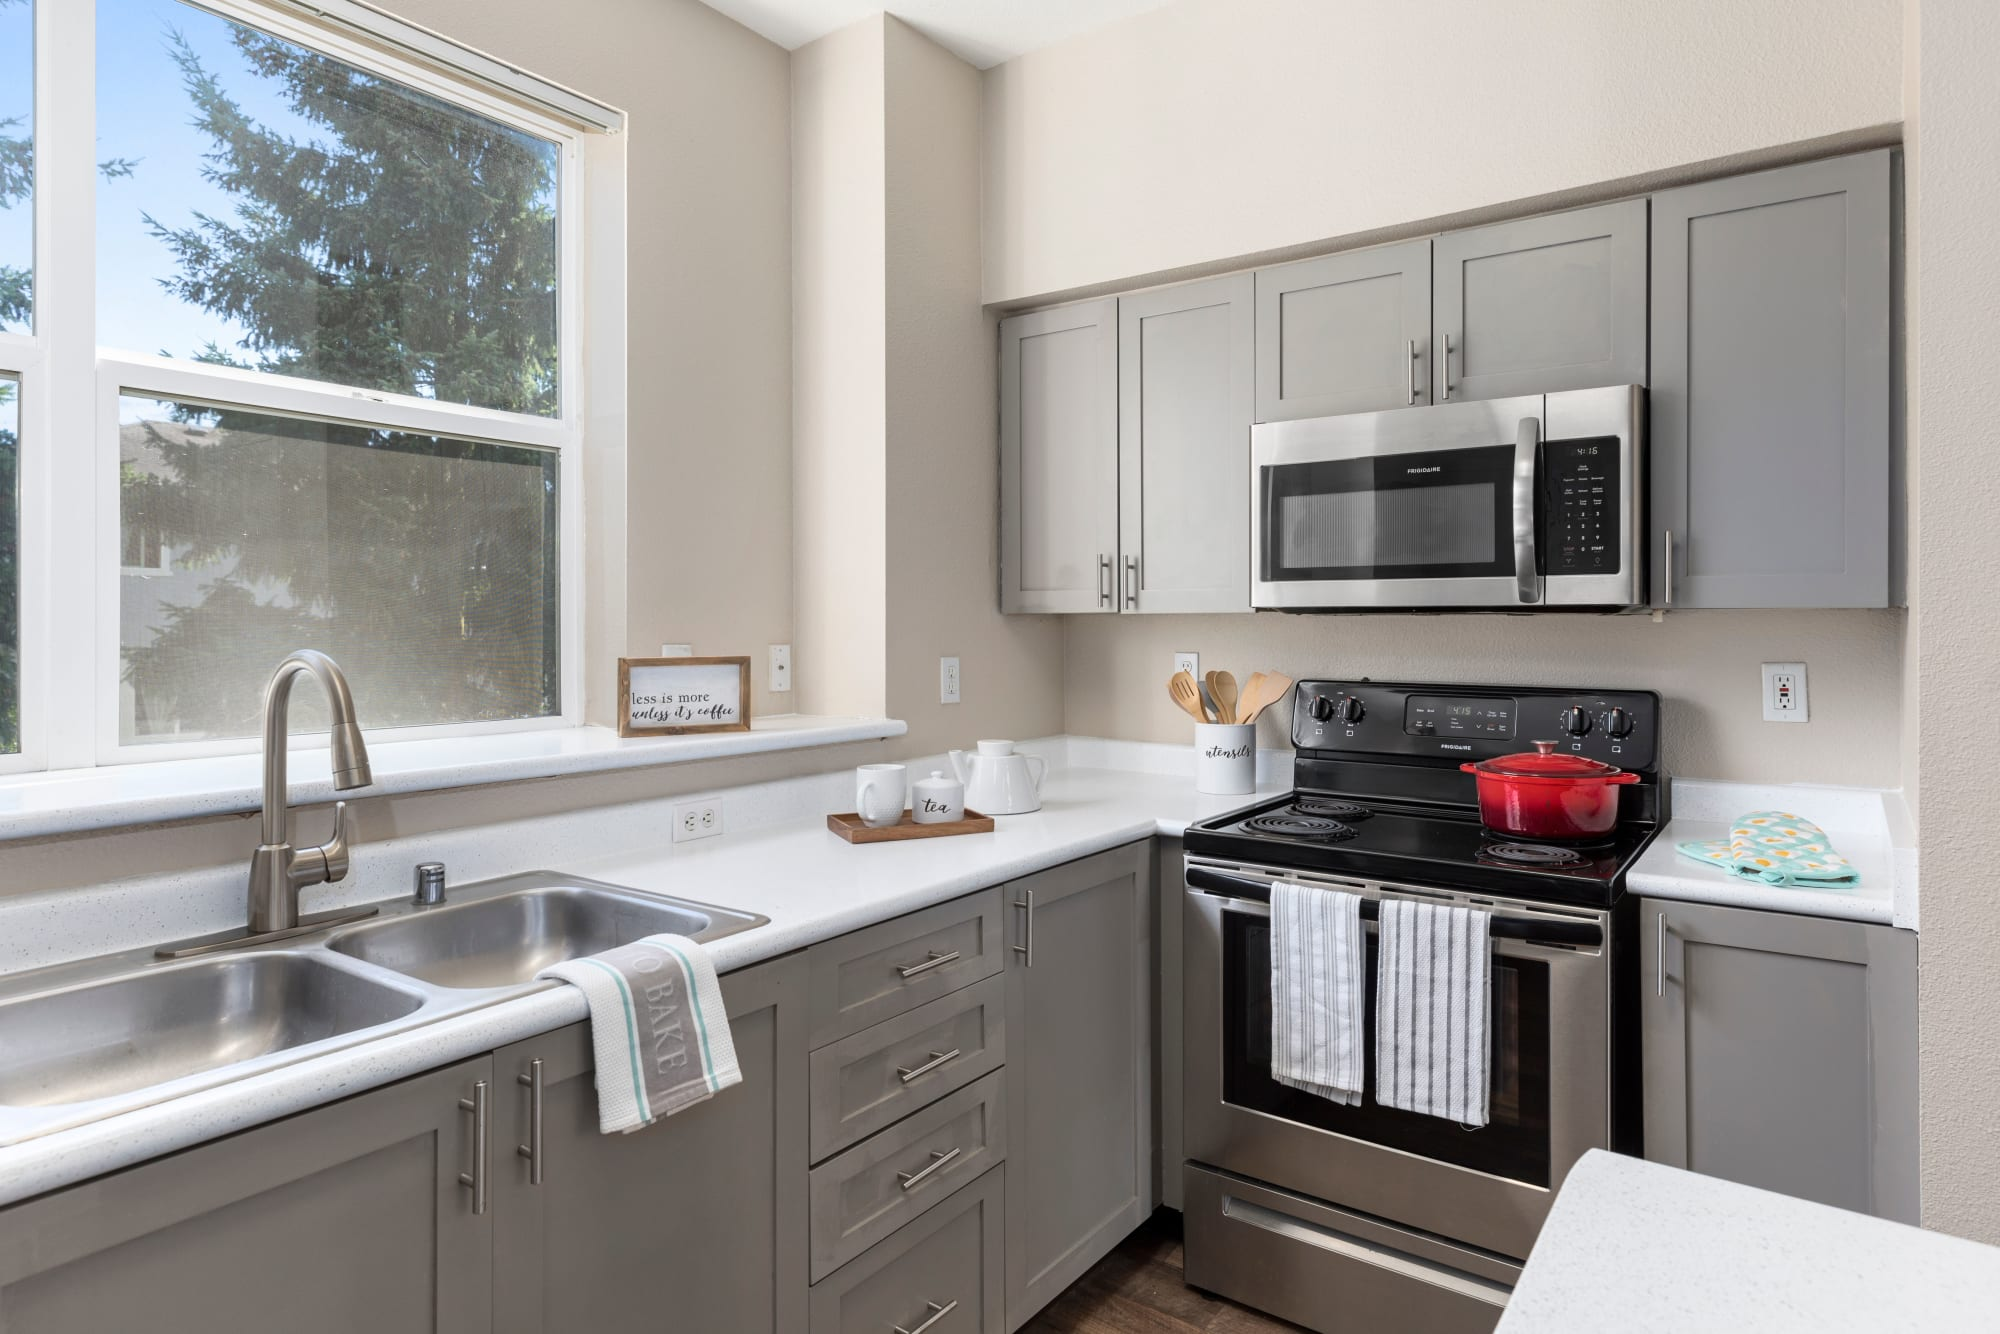 Kitchen with stainless steel appliances at HighGrove Apartments in Everett, Washington